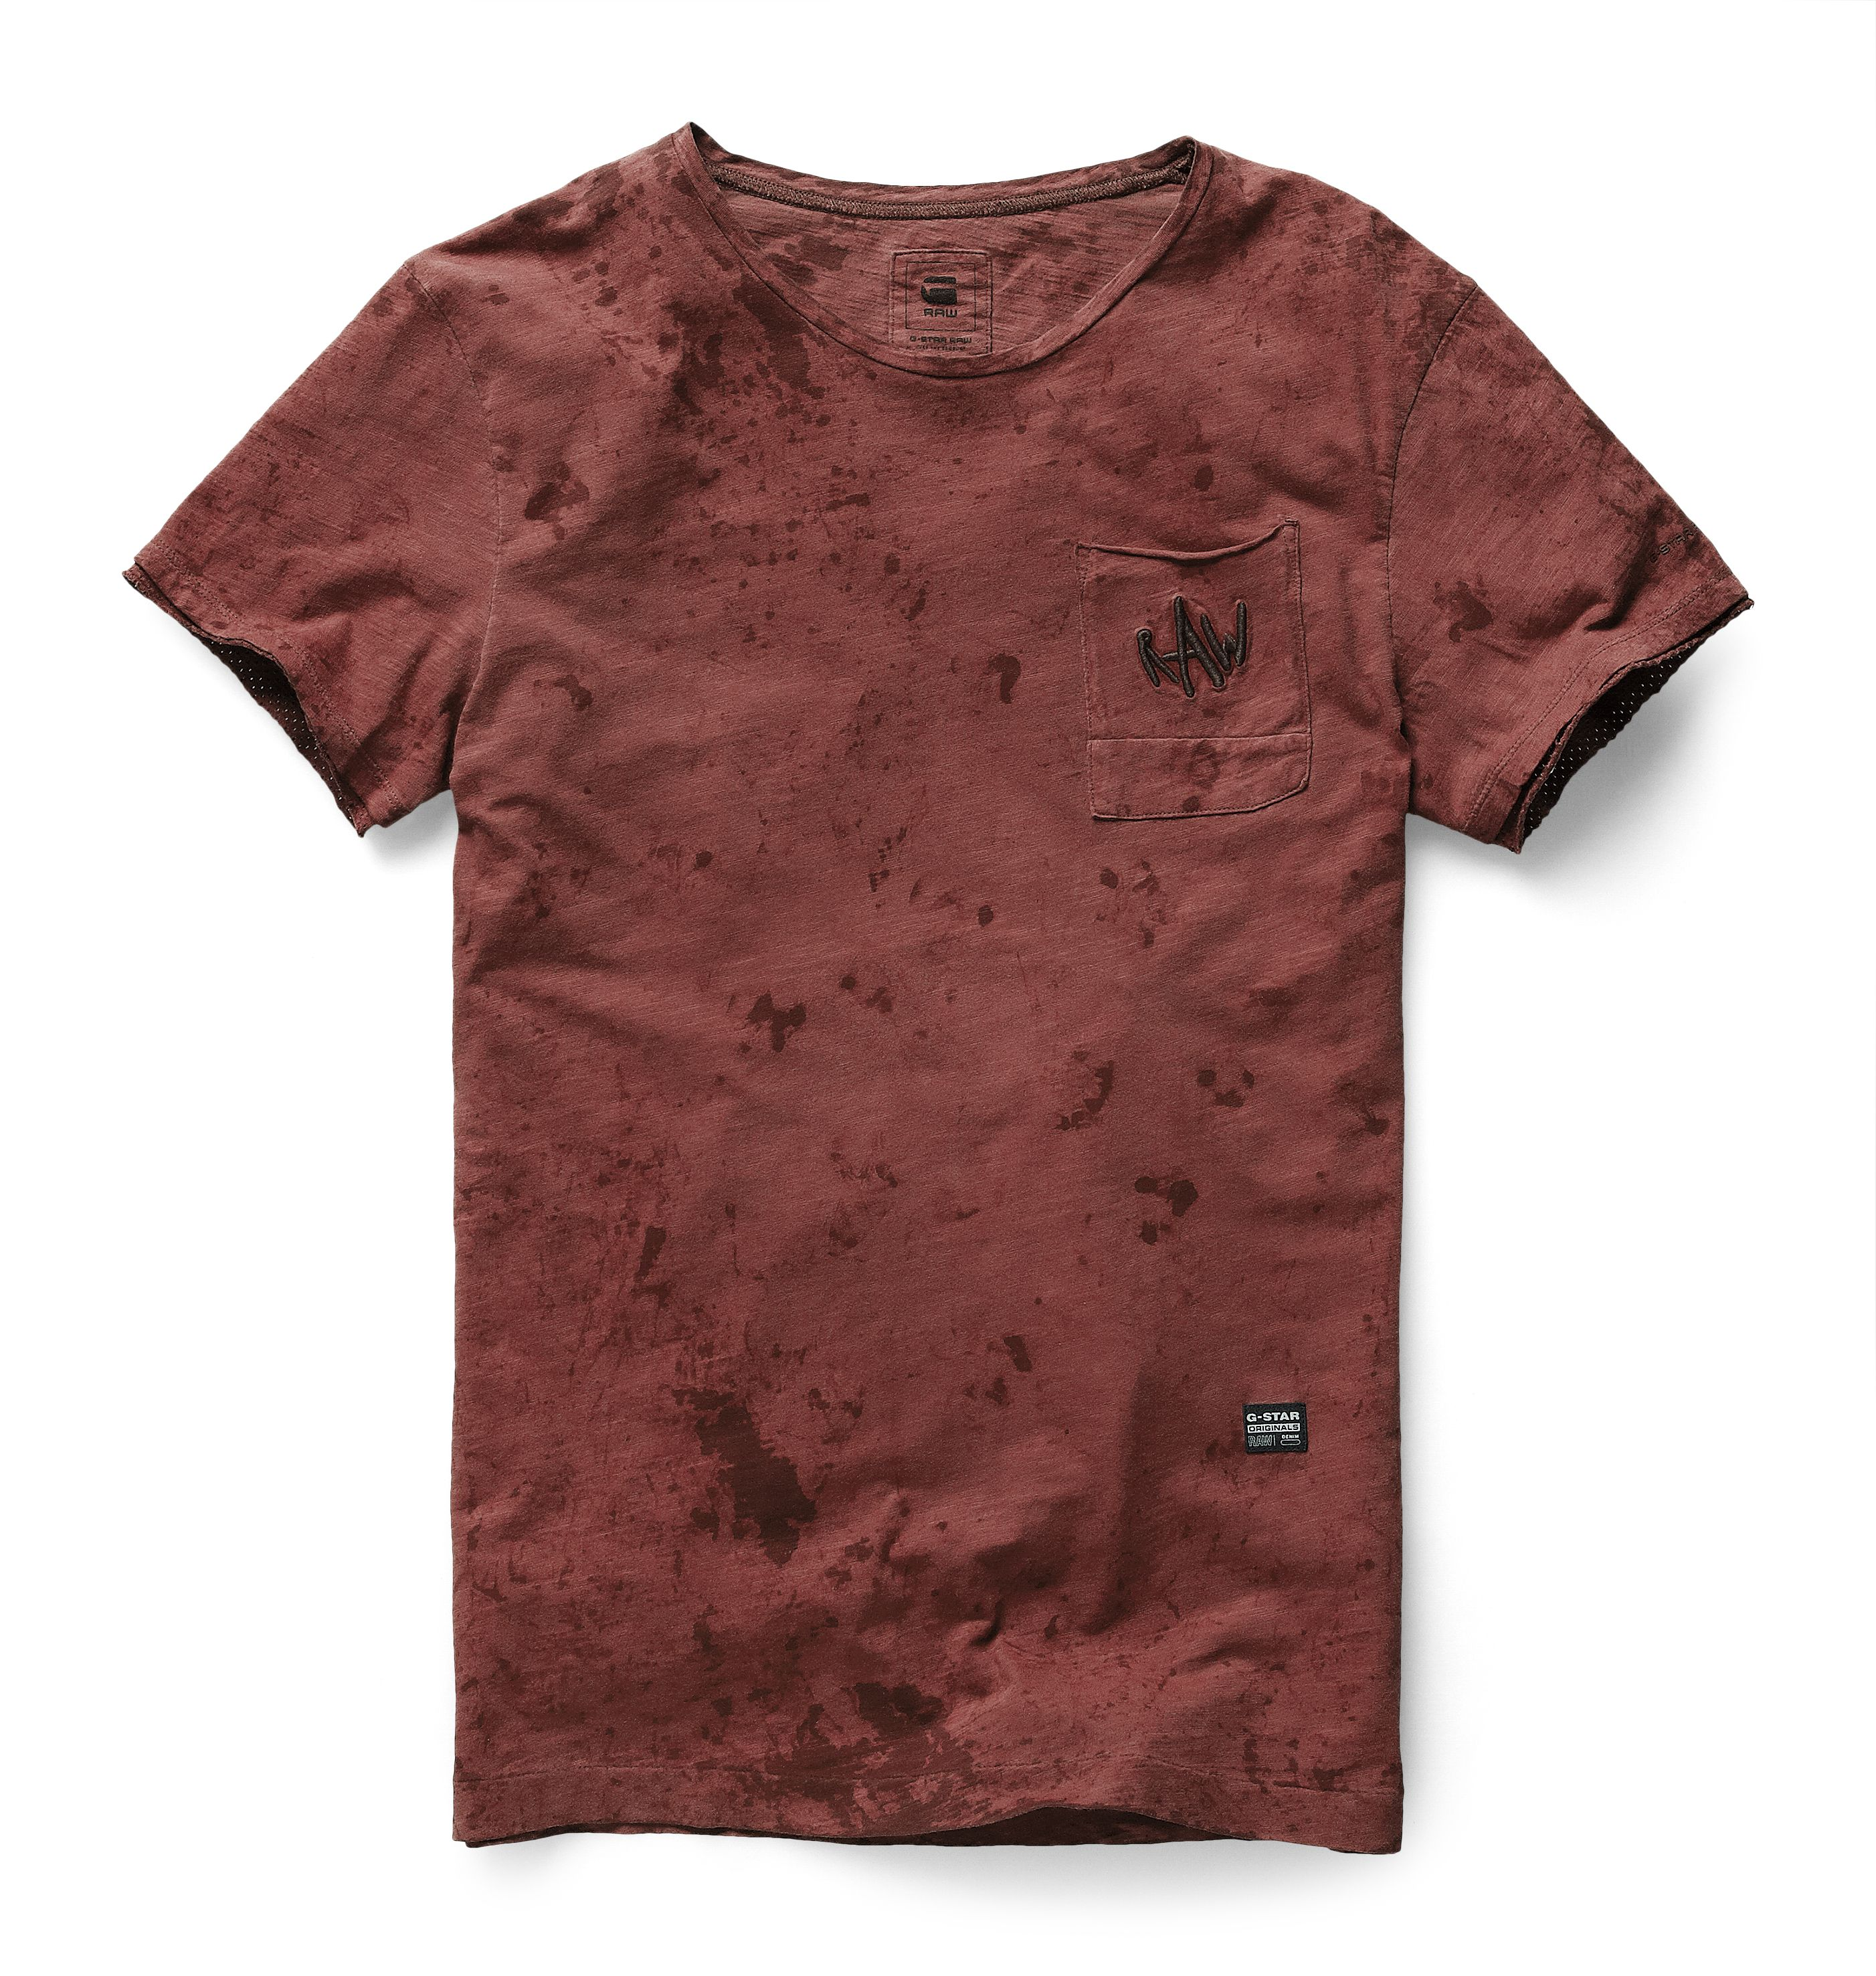 0fc9b1871c Round neck tee with a single patch pocket and raw-edge sleeves. The shoulder